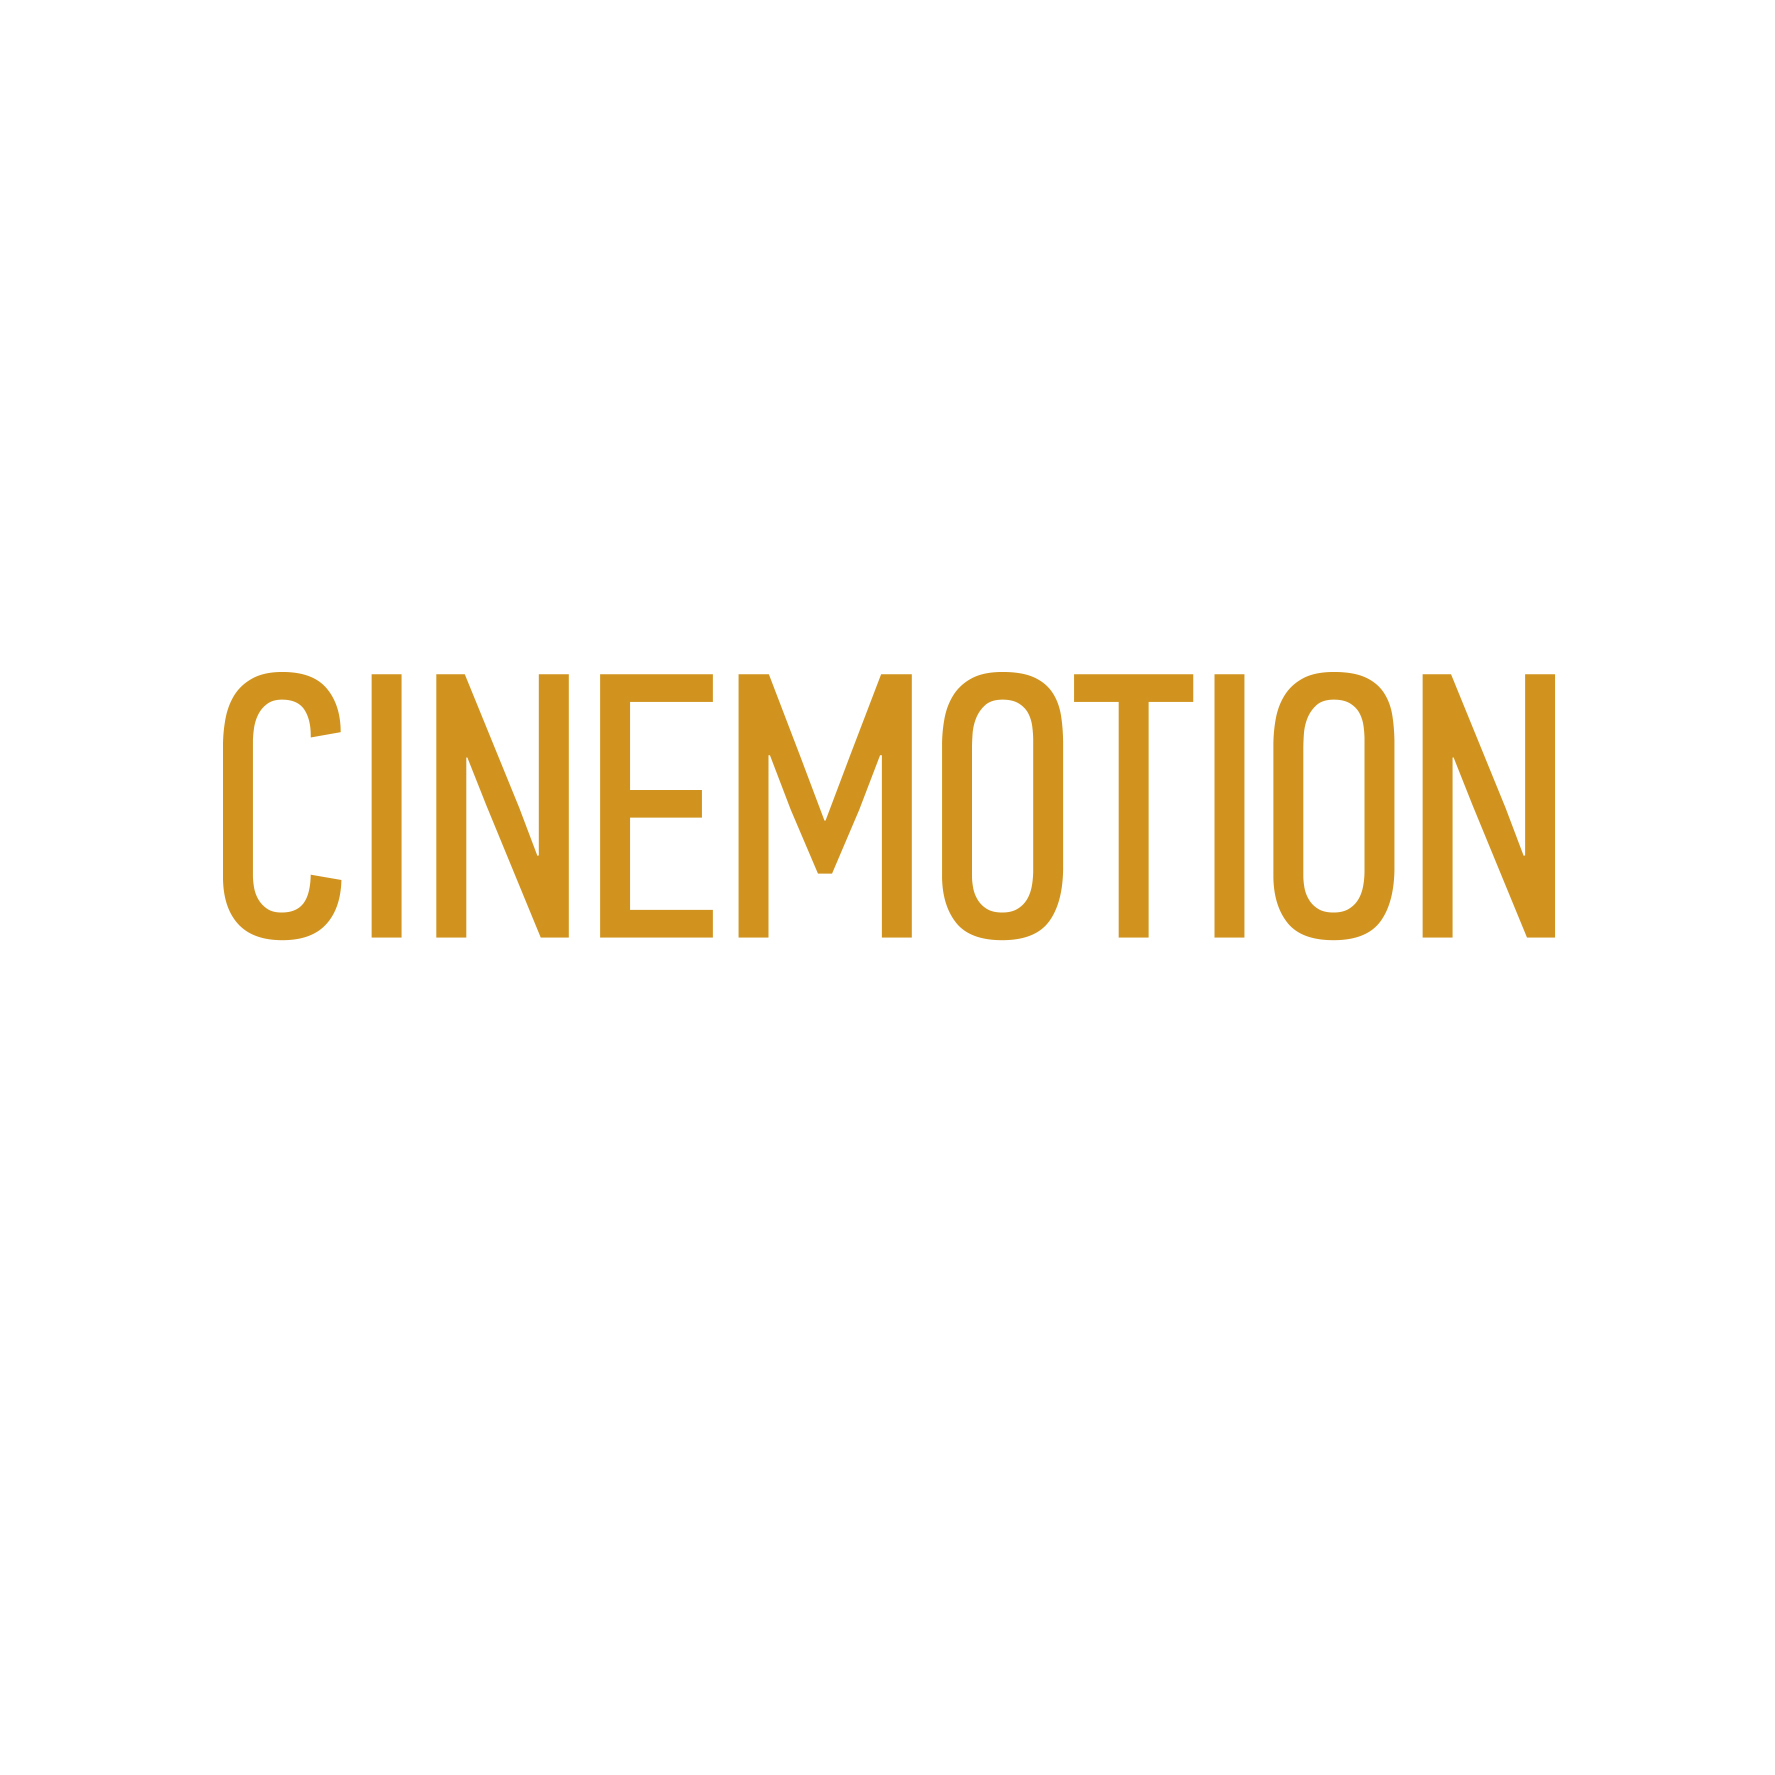 Cinemotion Logo